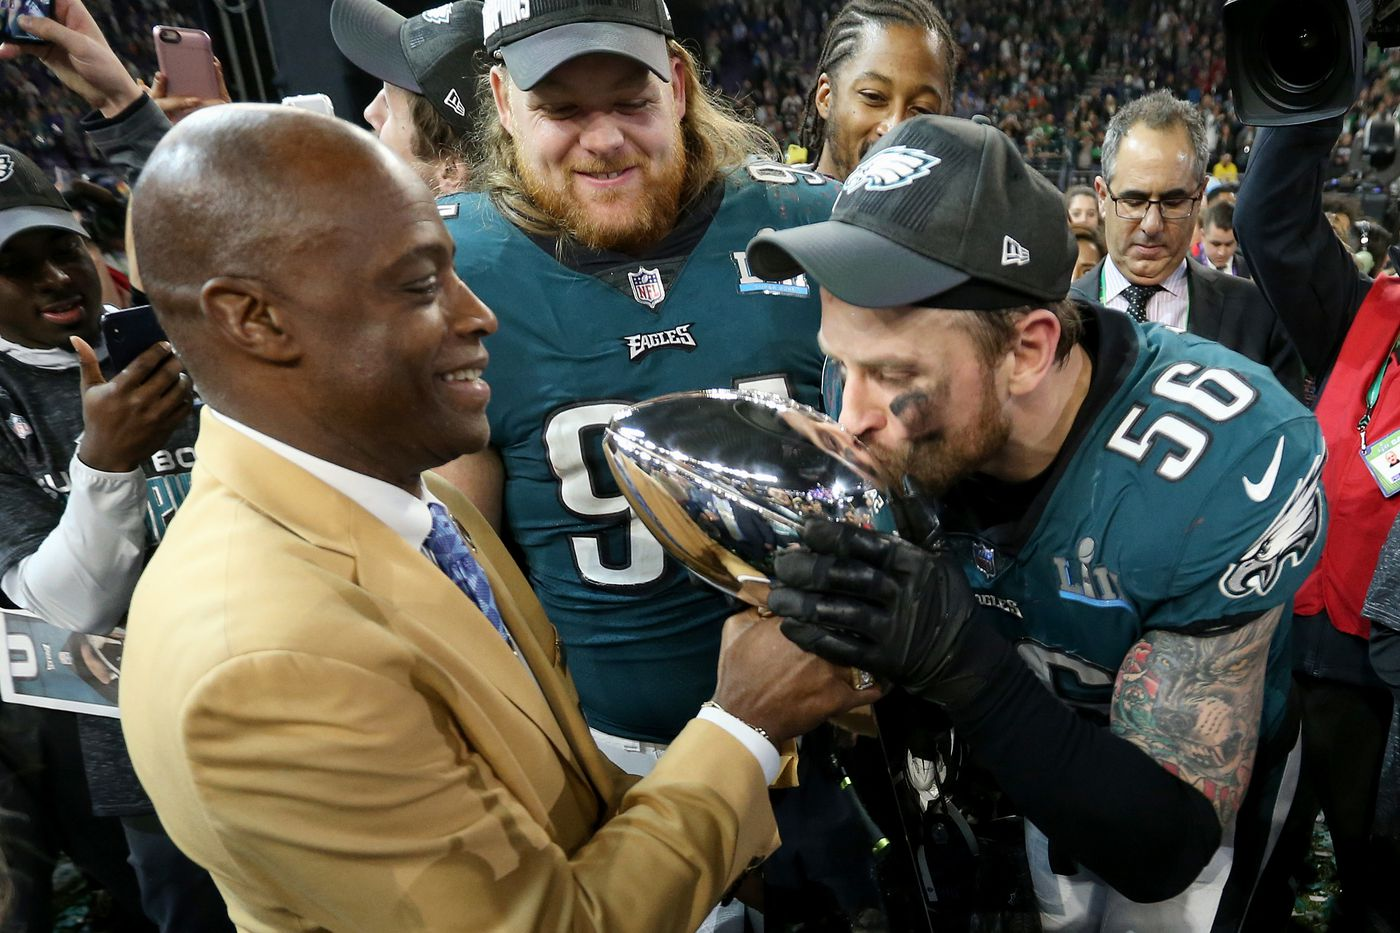 Trump again breaks tradition by rescinding Eagles' invitation to White House